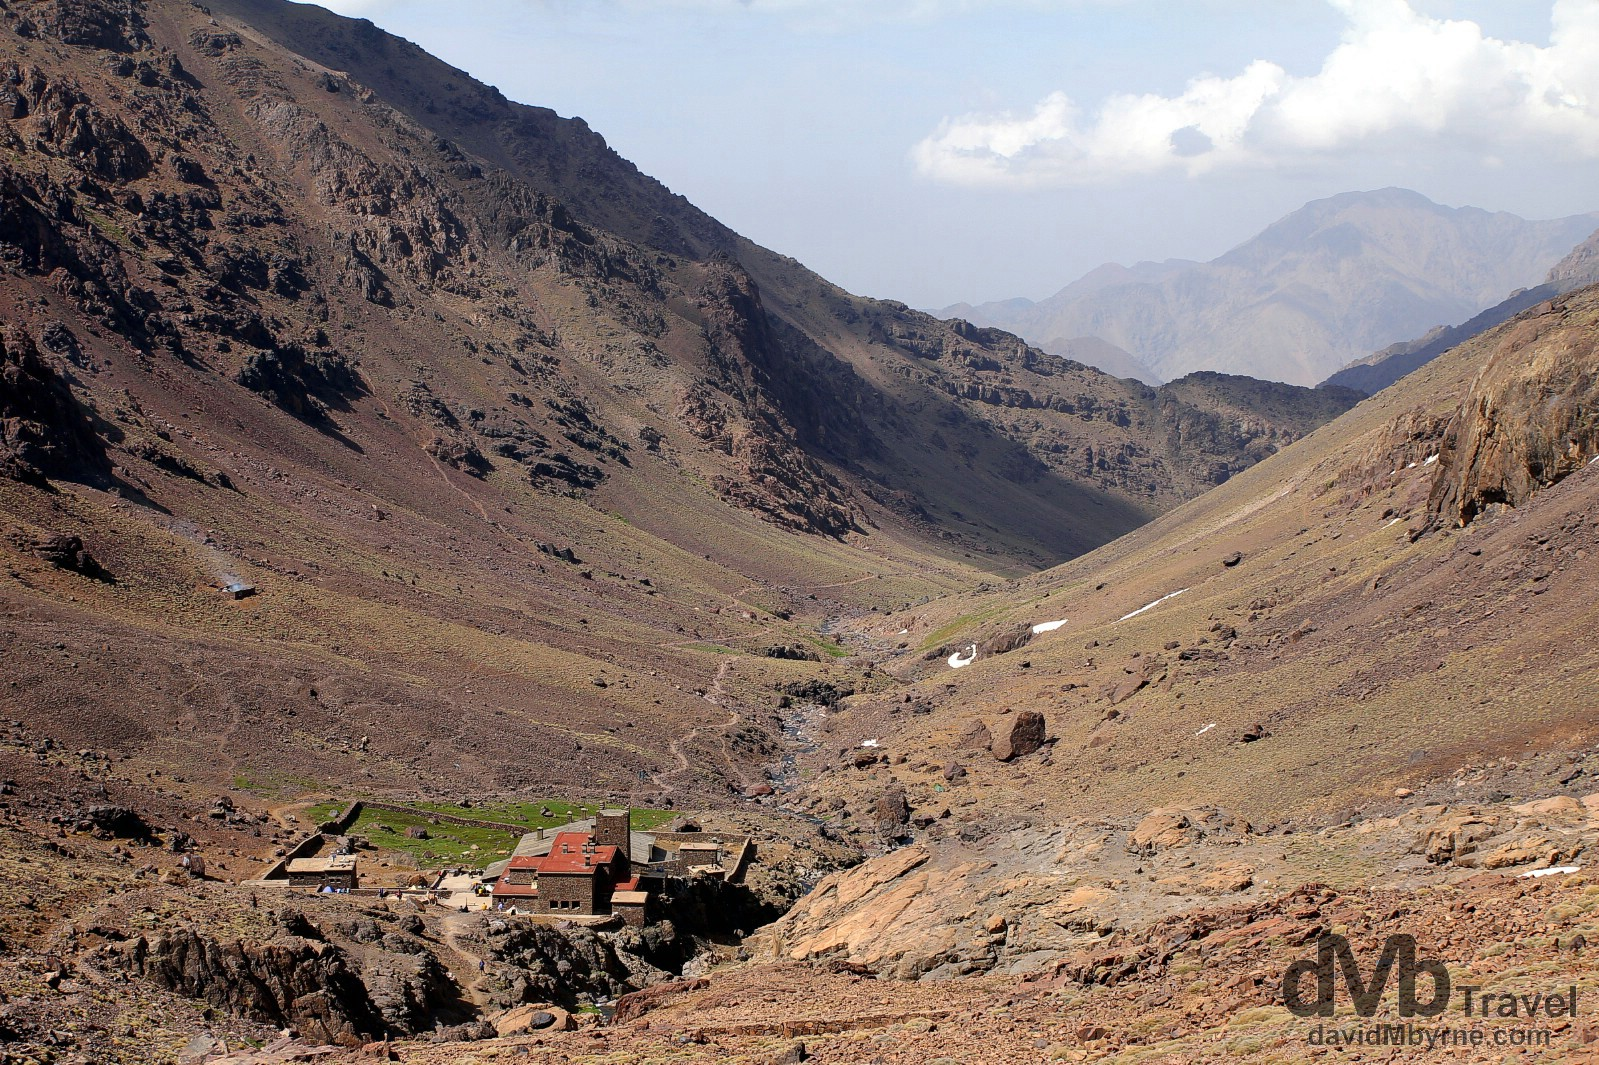 The Toubkal Refuge sitting in the valley leading to the summit of Jebel Toubkal, High Atlas, central Morocco. May 10th, 2014.